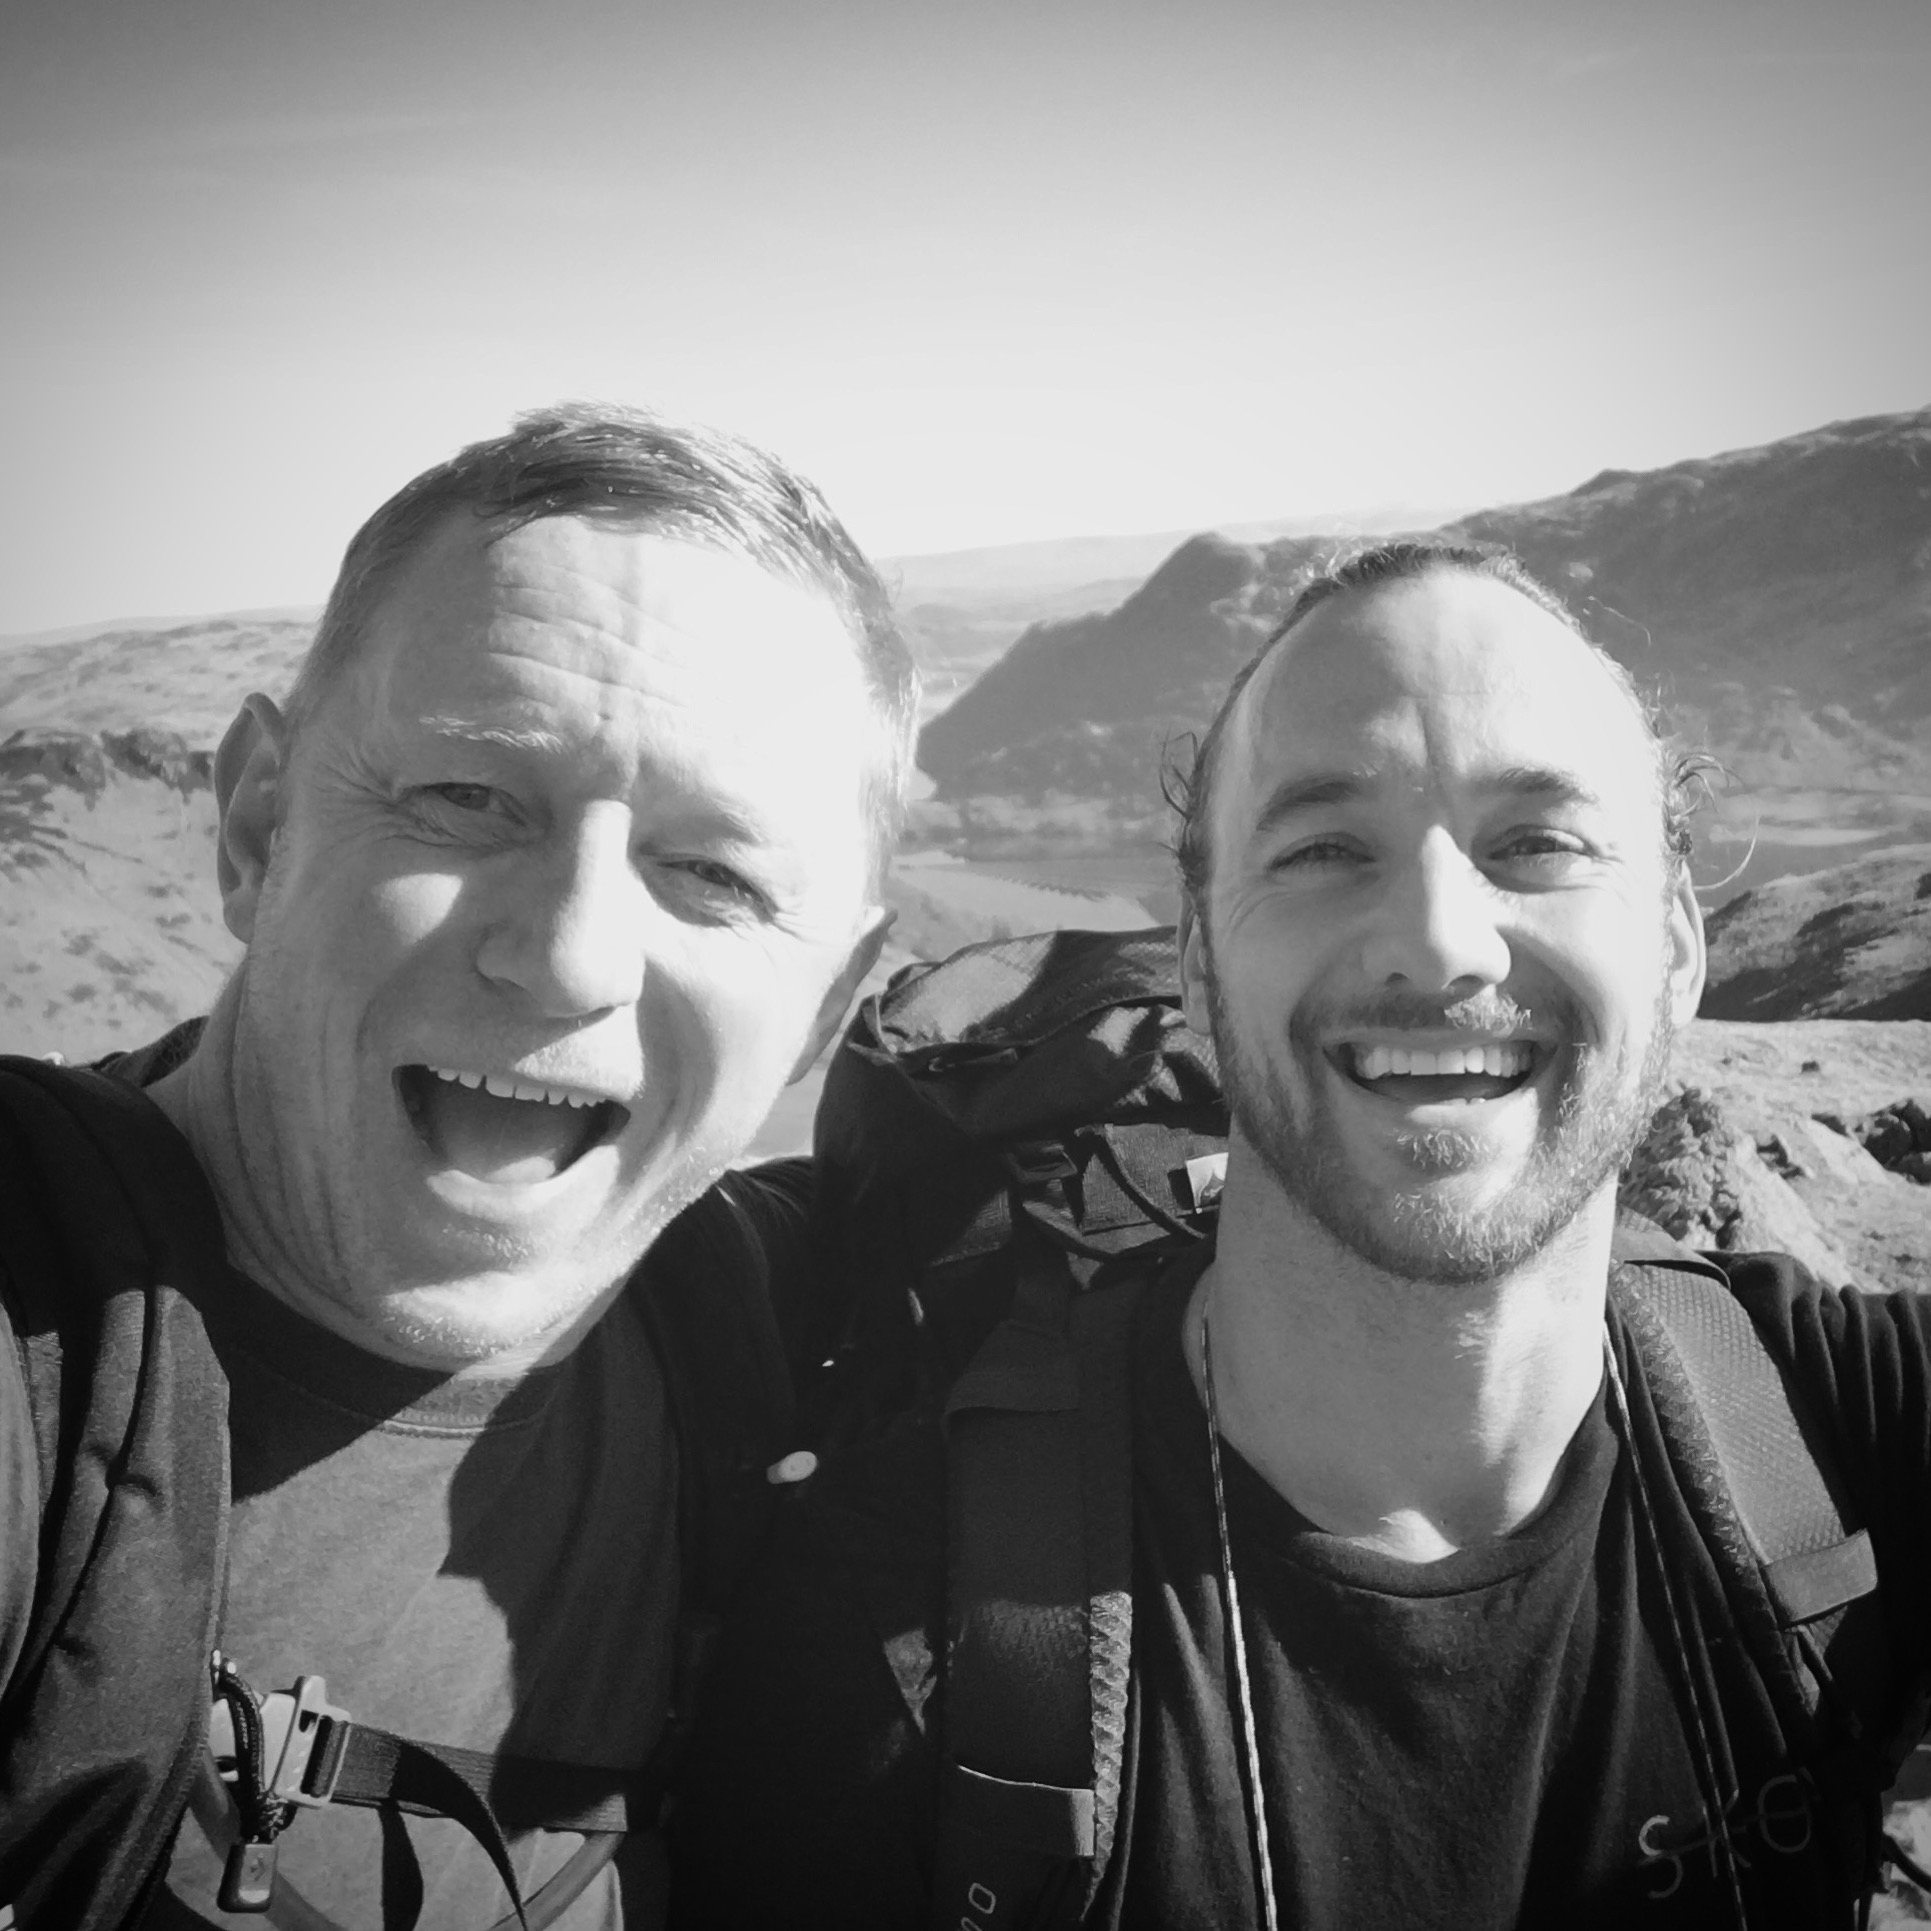 The Strength Temple Directors, Rich Davis & Richie Norton on their way to summit Helvellyn, The Lake District, England.